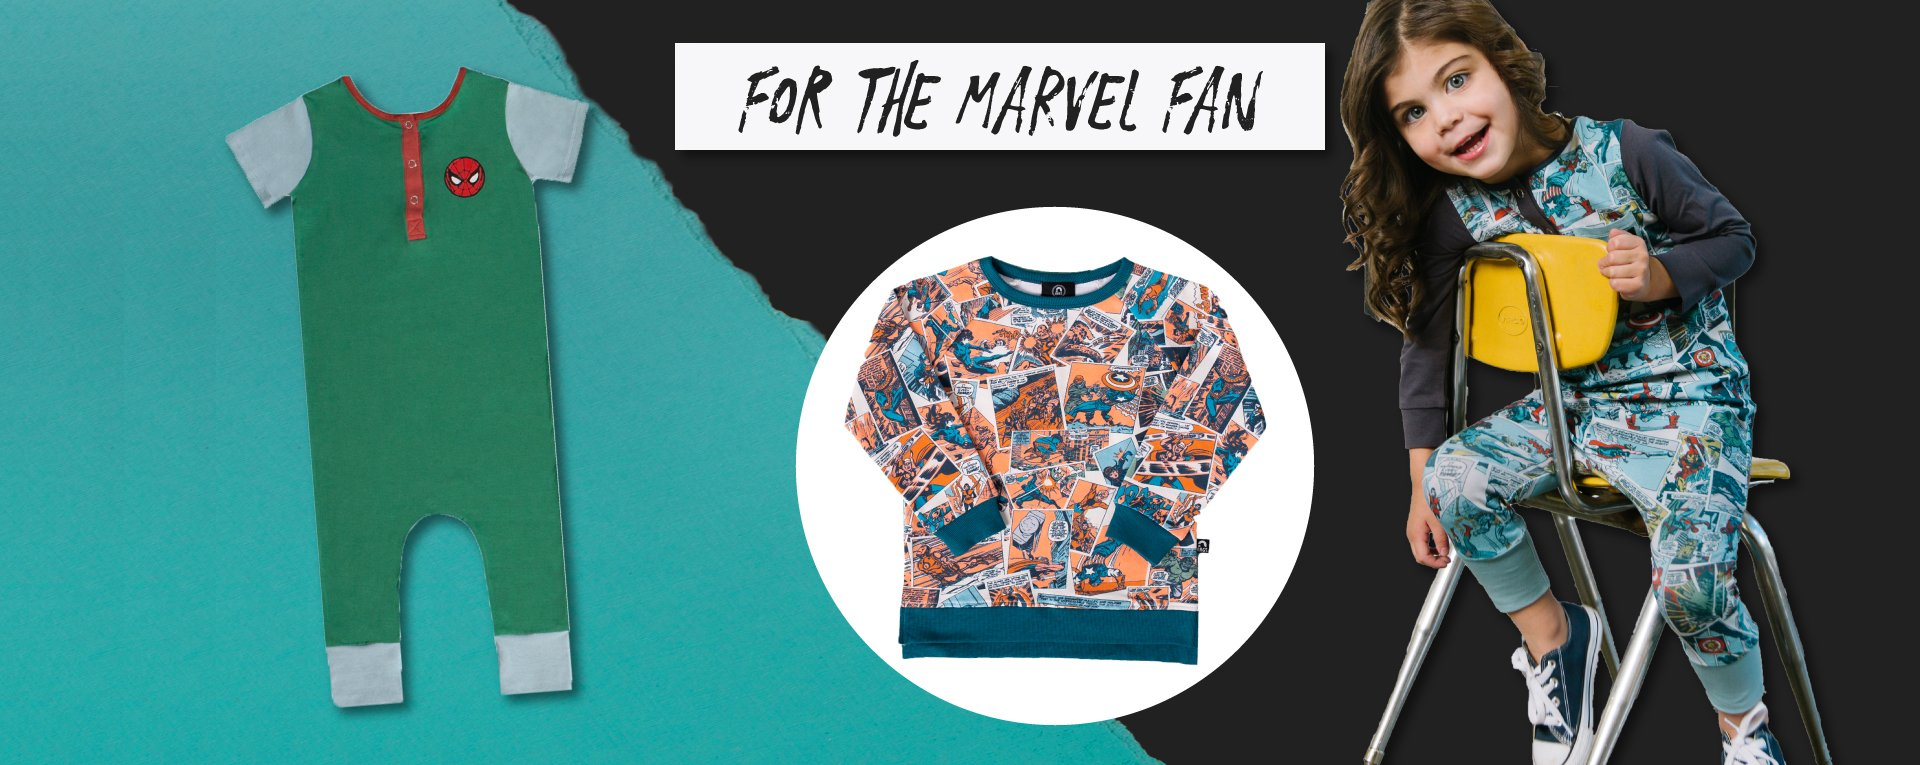 RAGS Gift guide for the MARVEL and Avengers fan